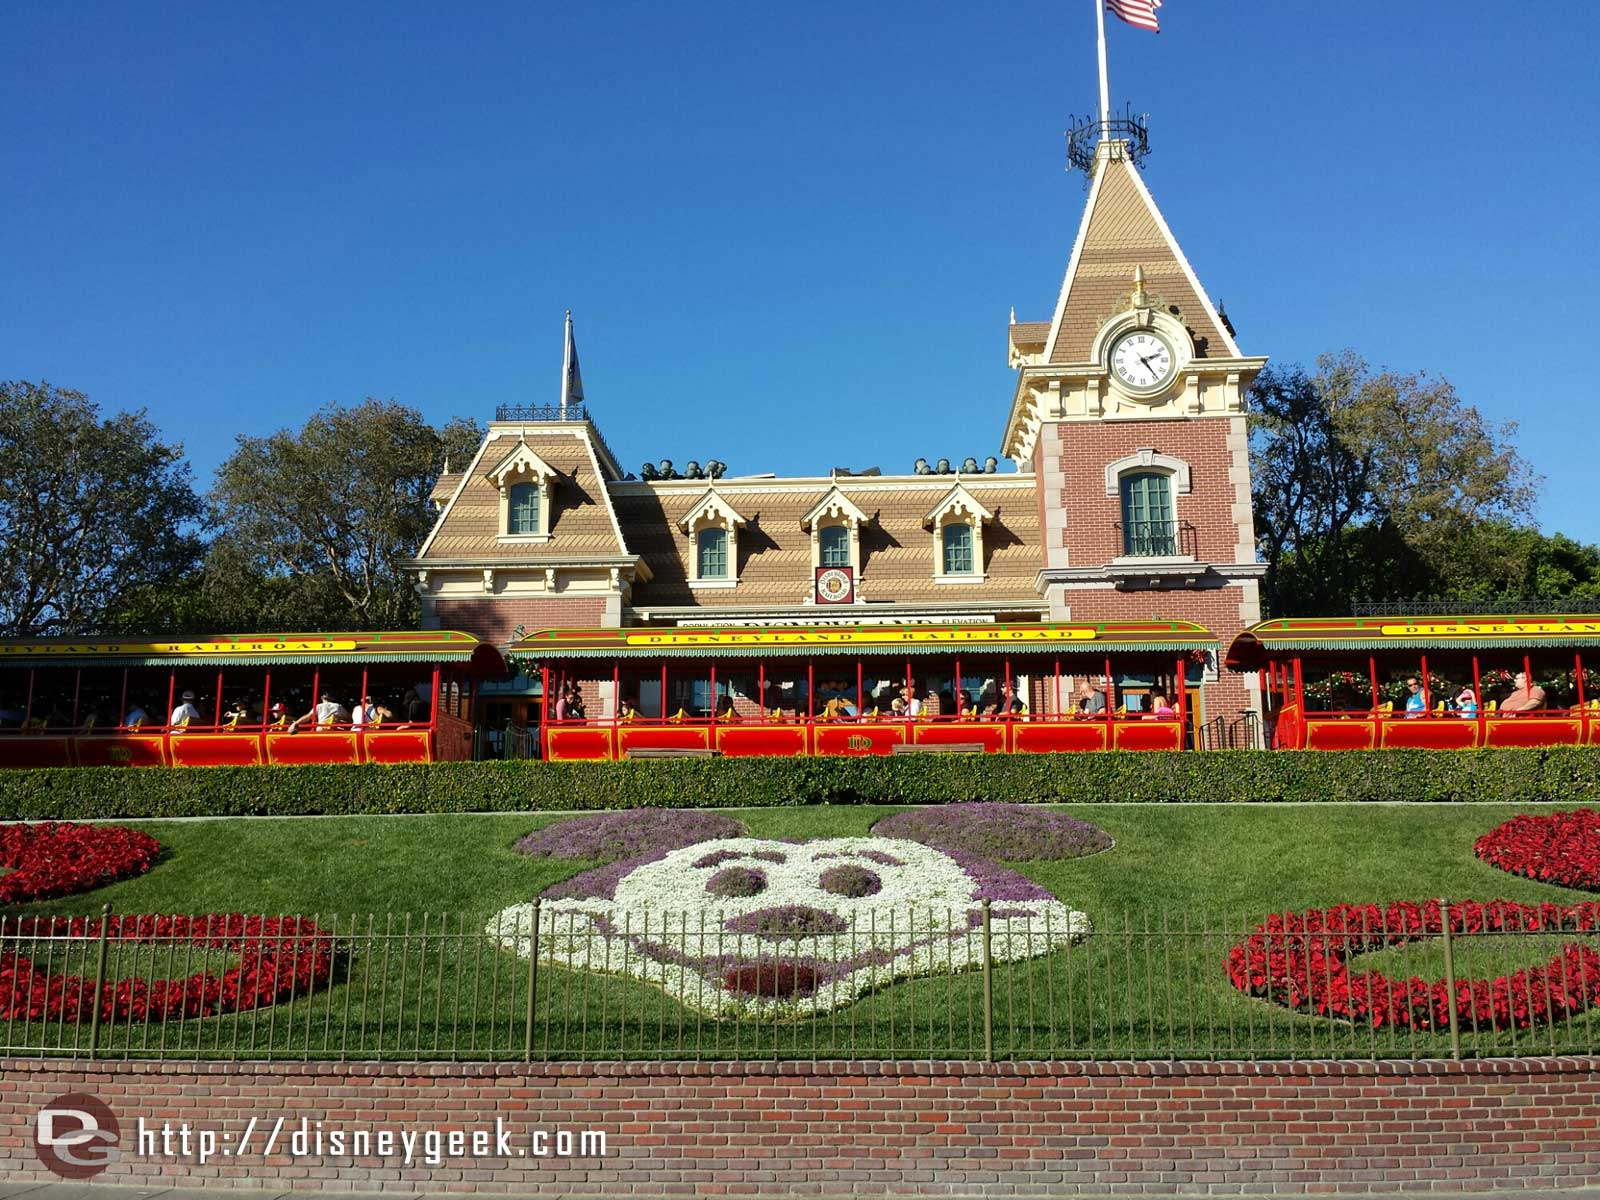 1st stop today, #Disneyland. The floral Mickey had no guests in the way as I walked in